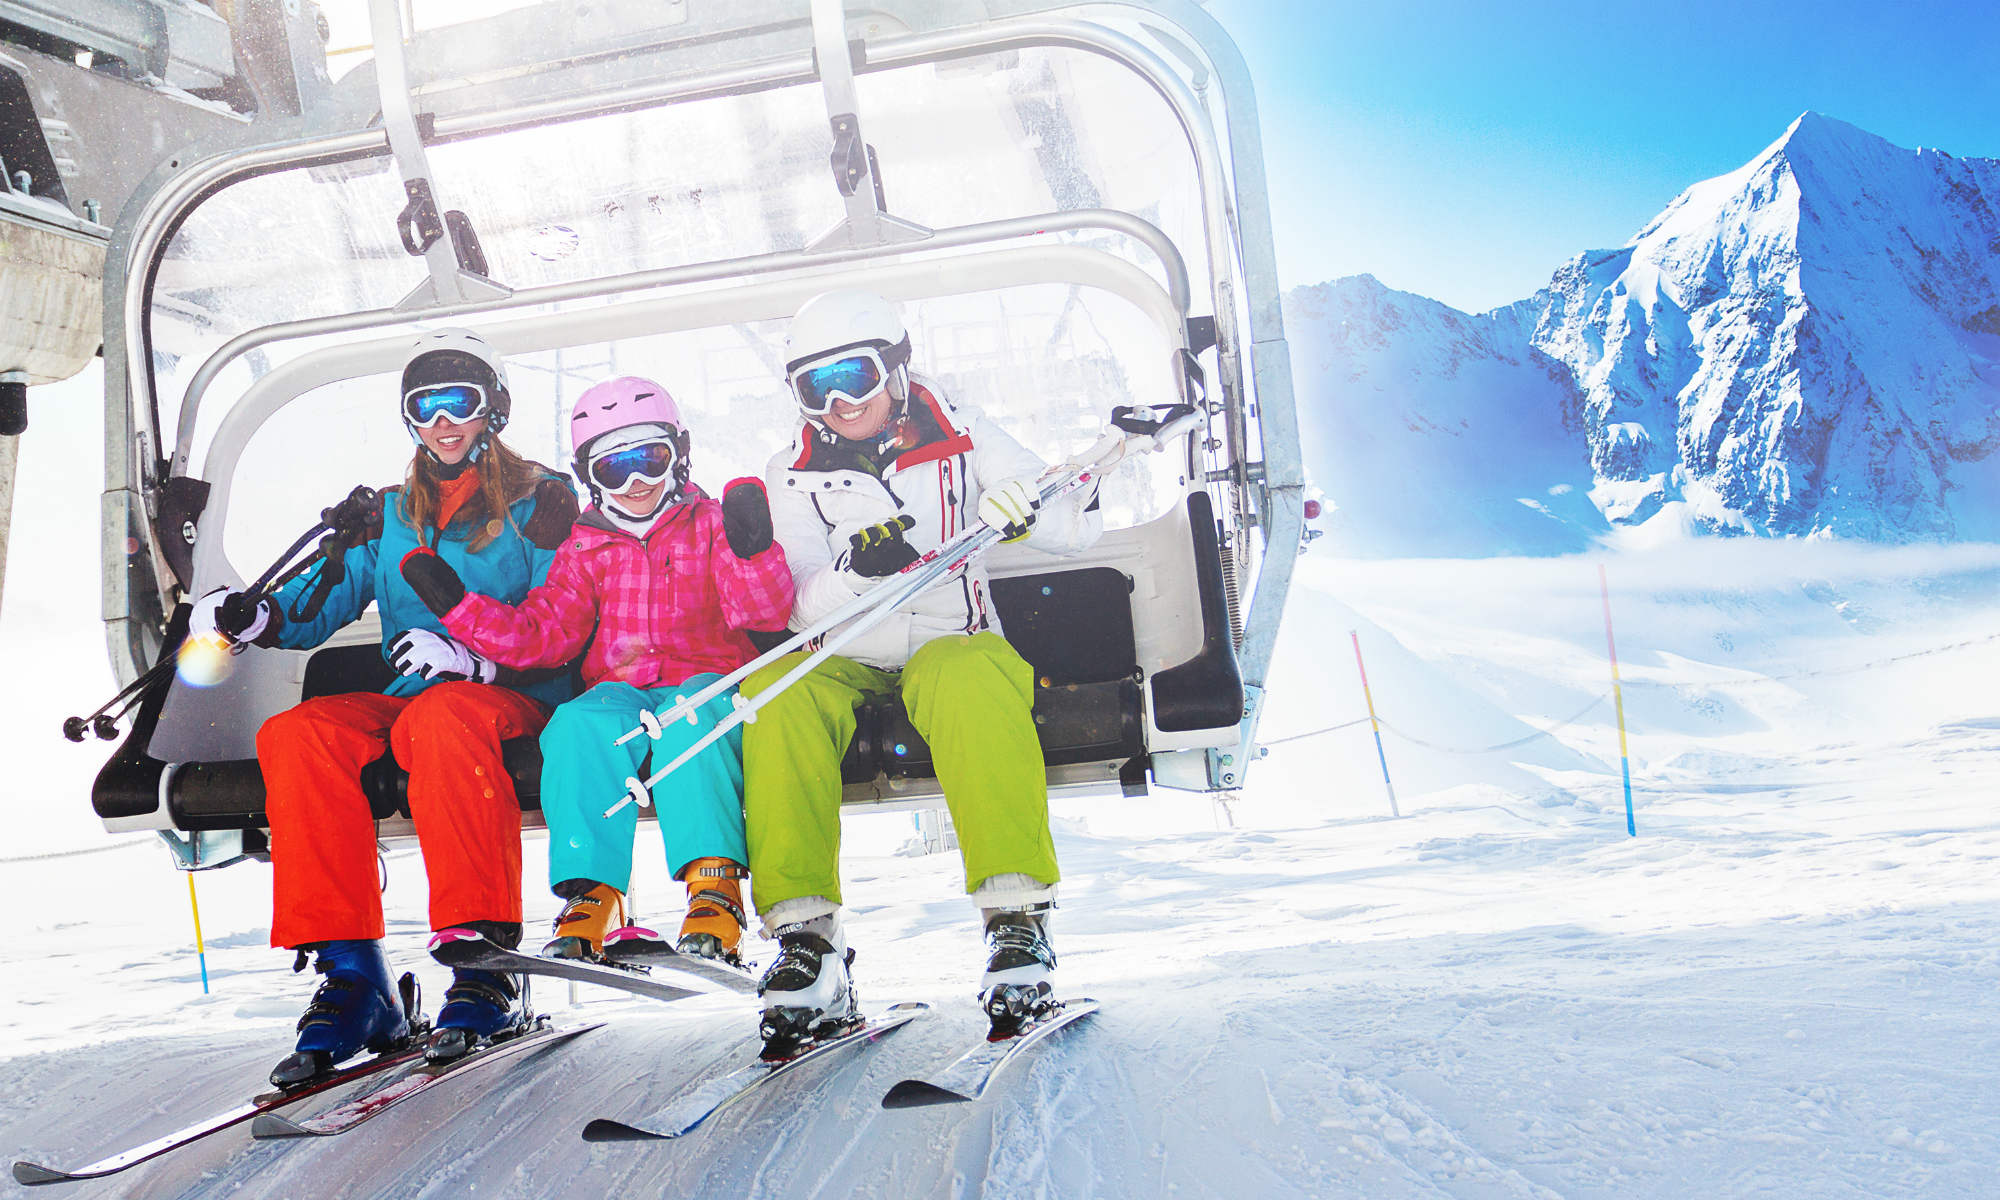 Young skiers in a chairlift.